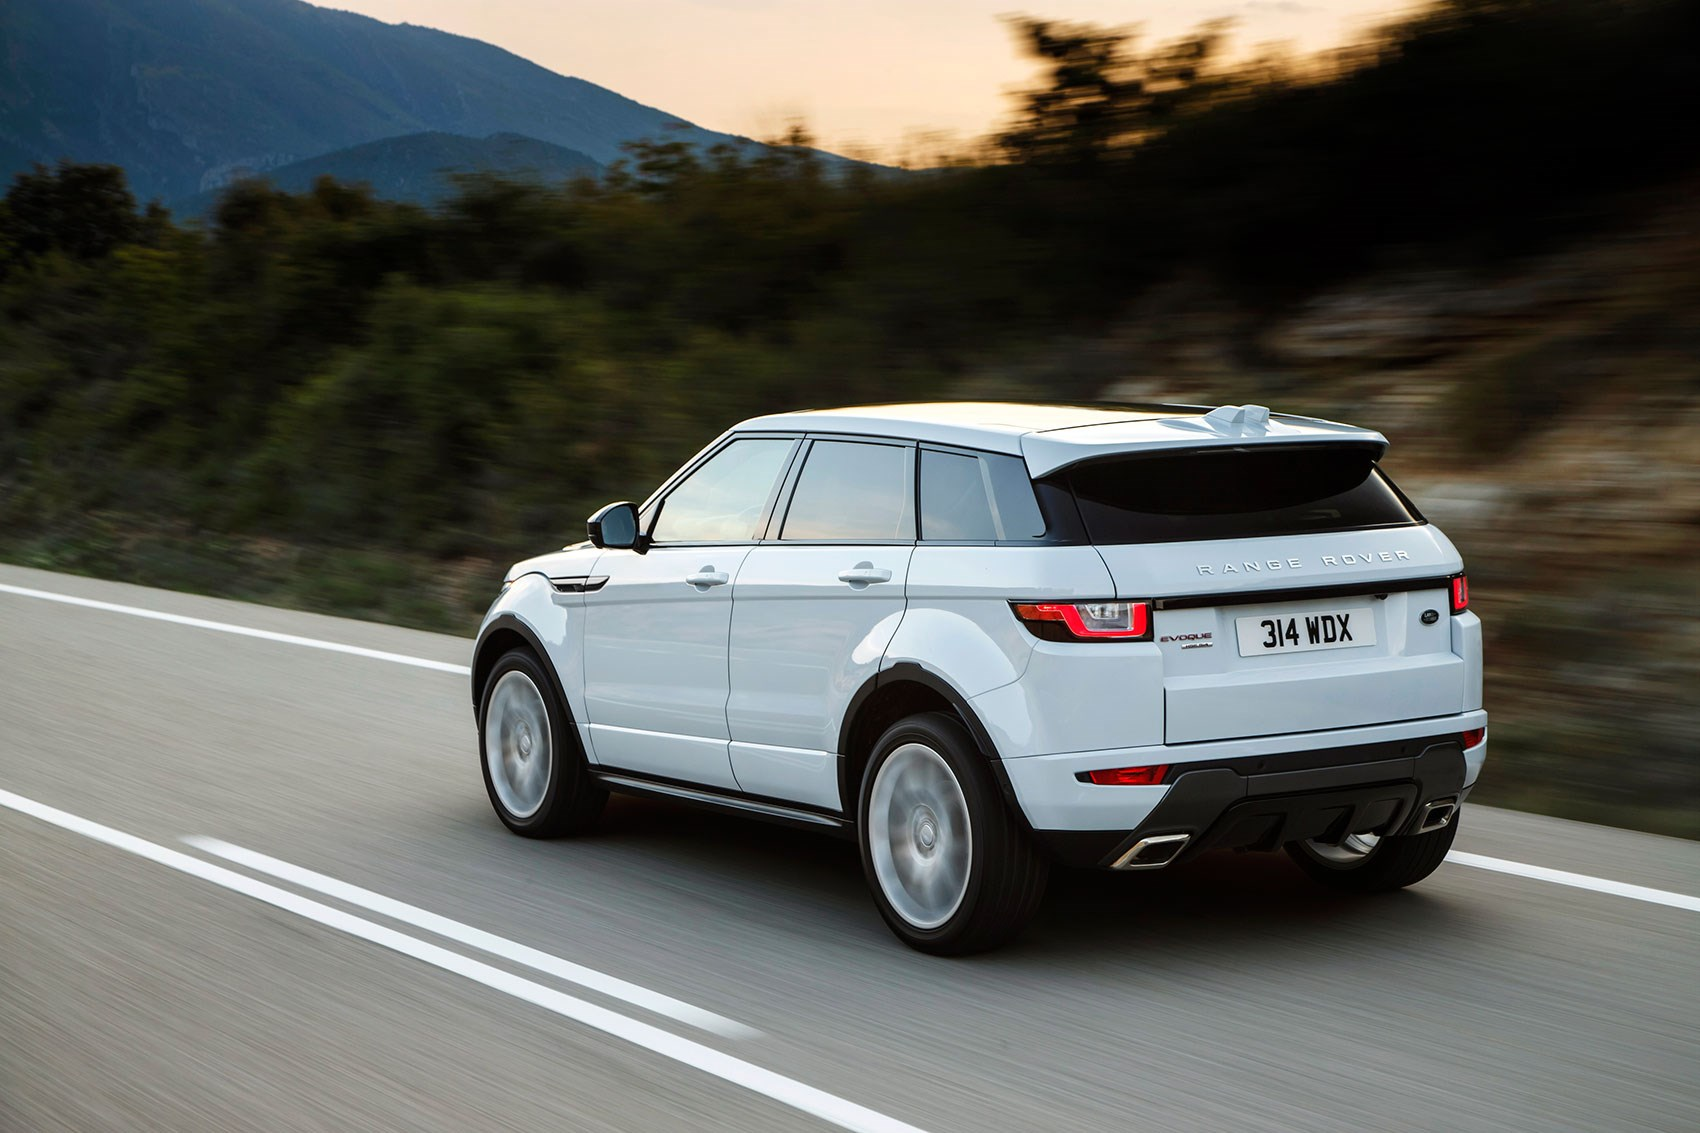 Brawnier Engines For 2018 Model Year Evoque And Discovery Sport